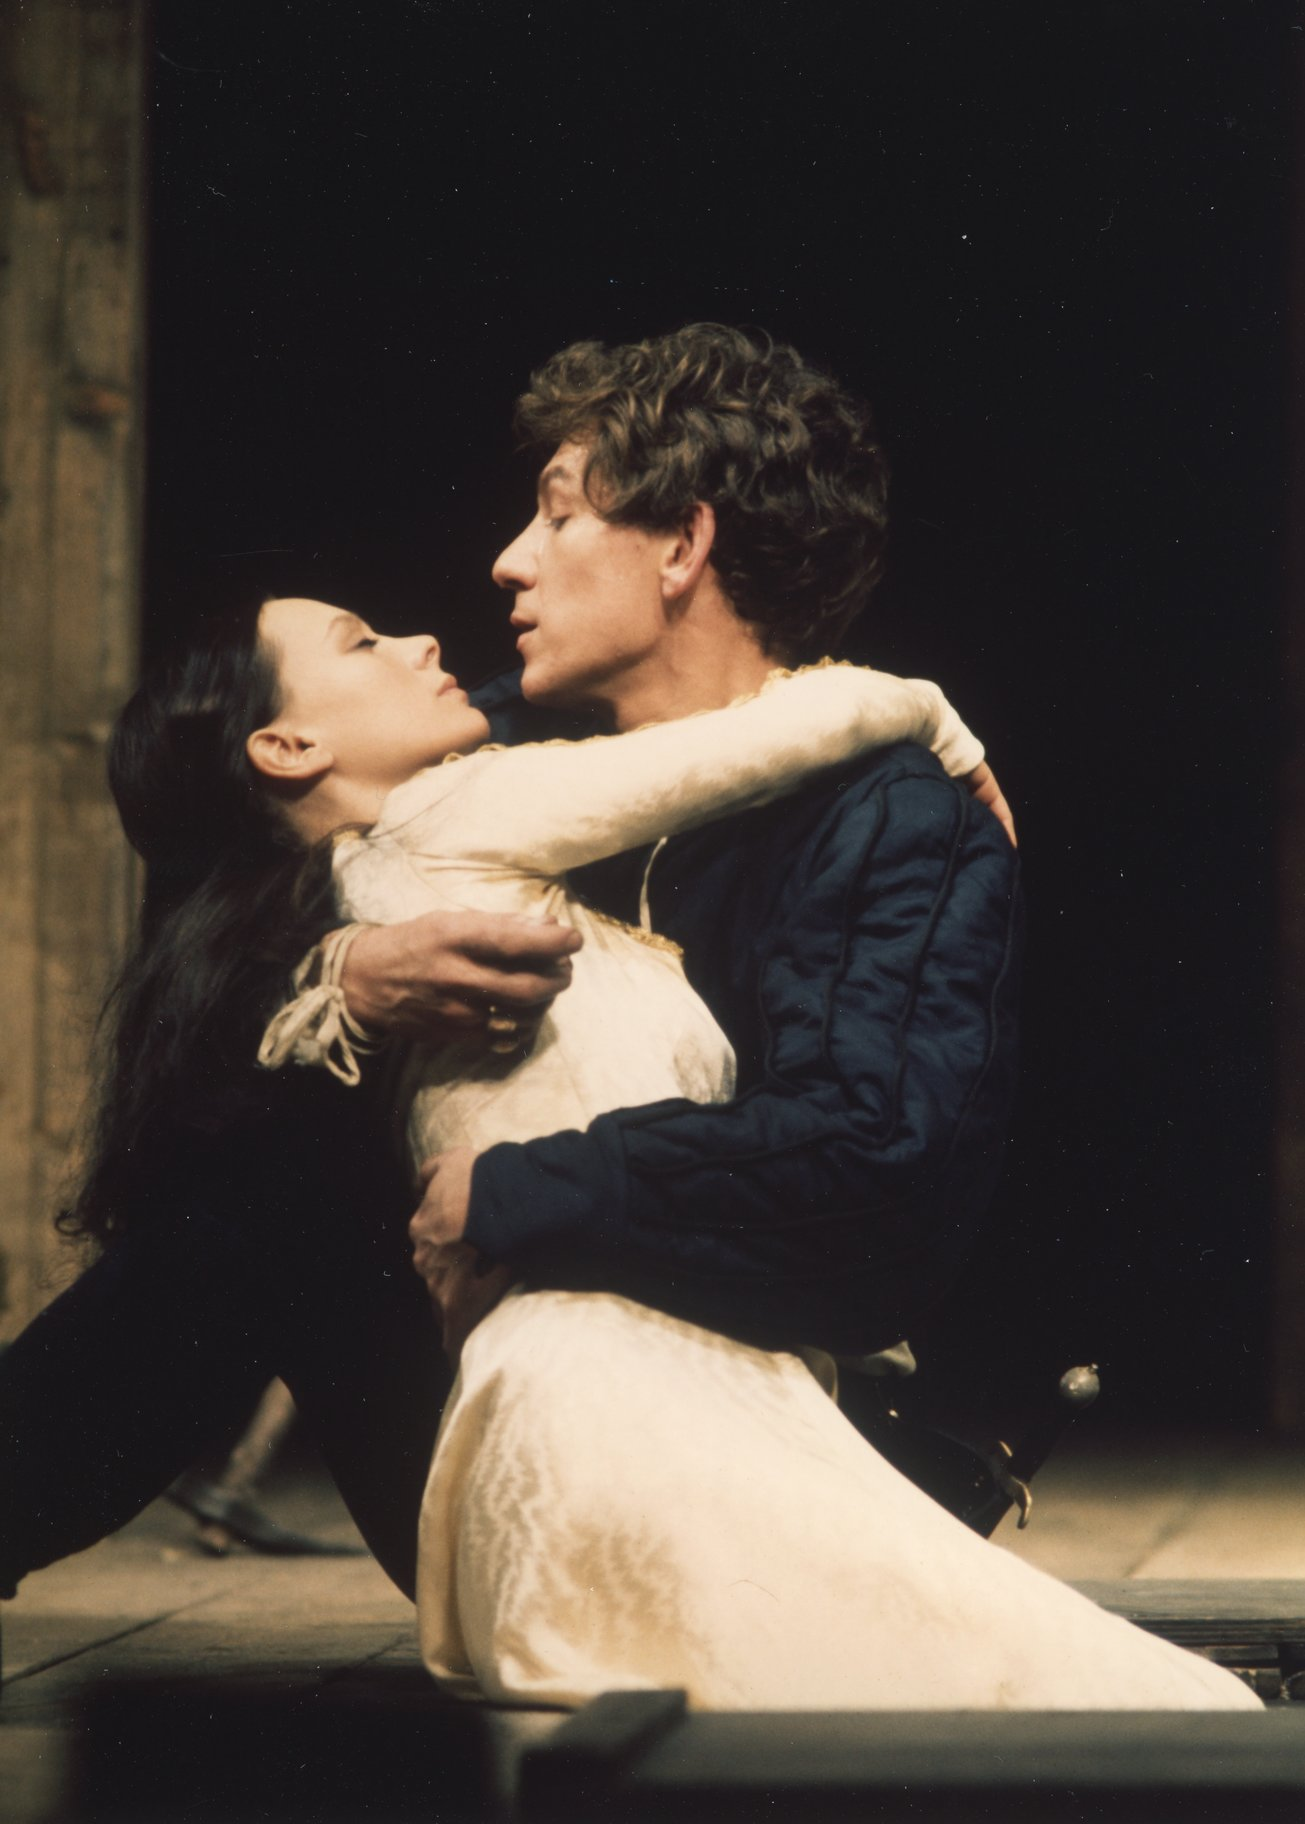 Romeo and Juliet embrace on the floor.